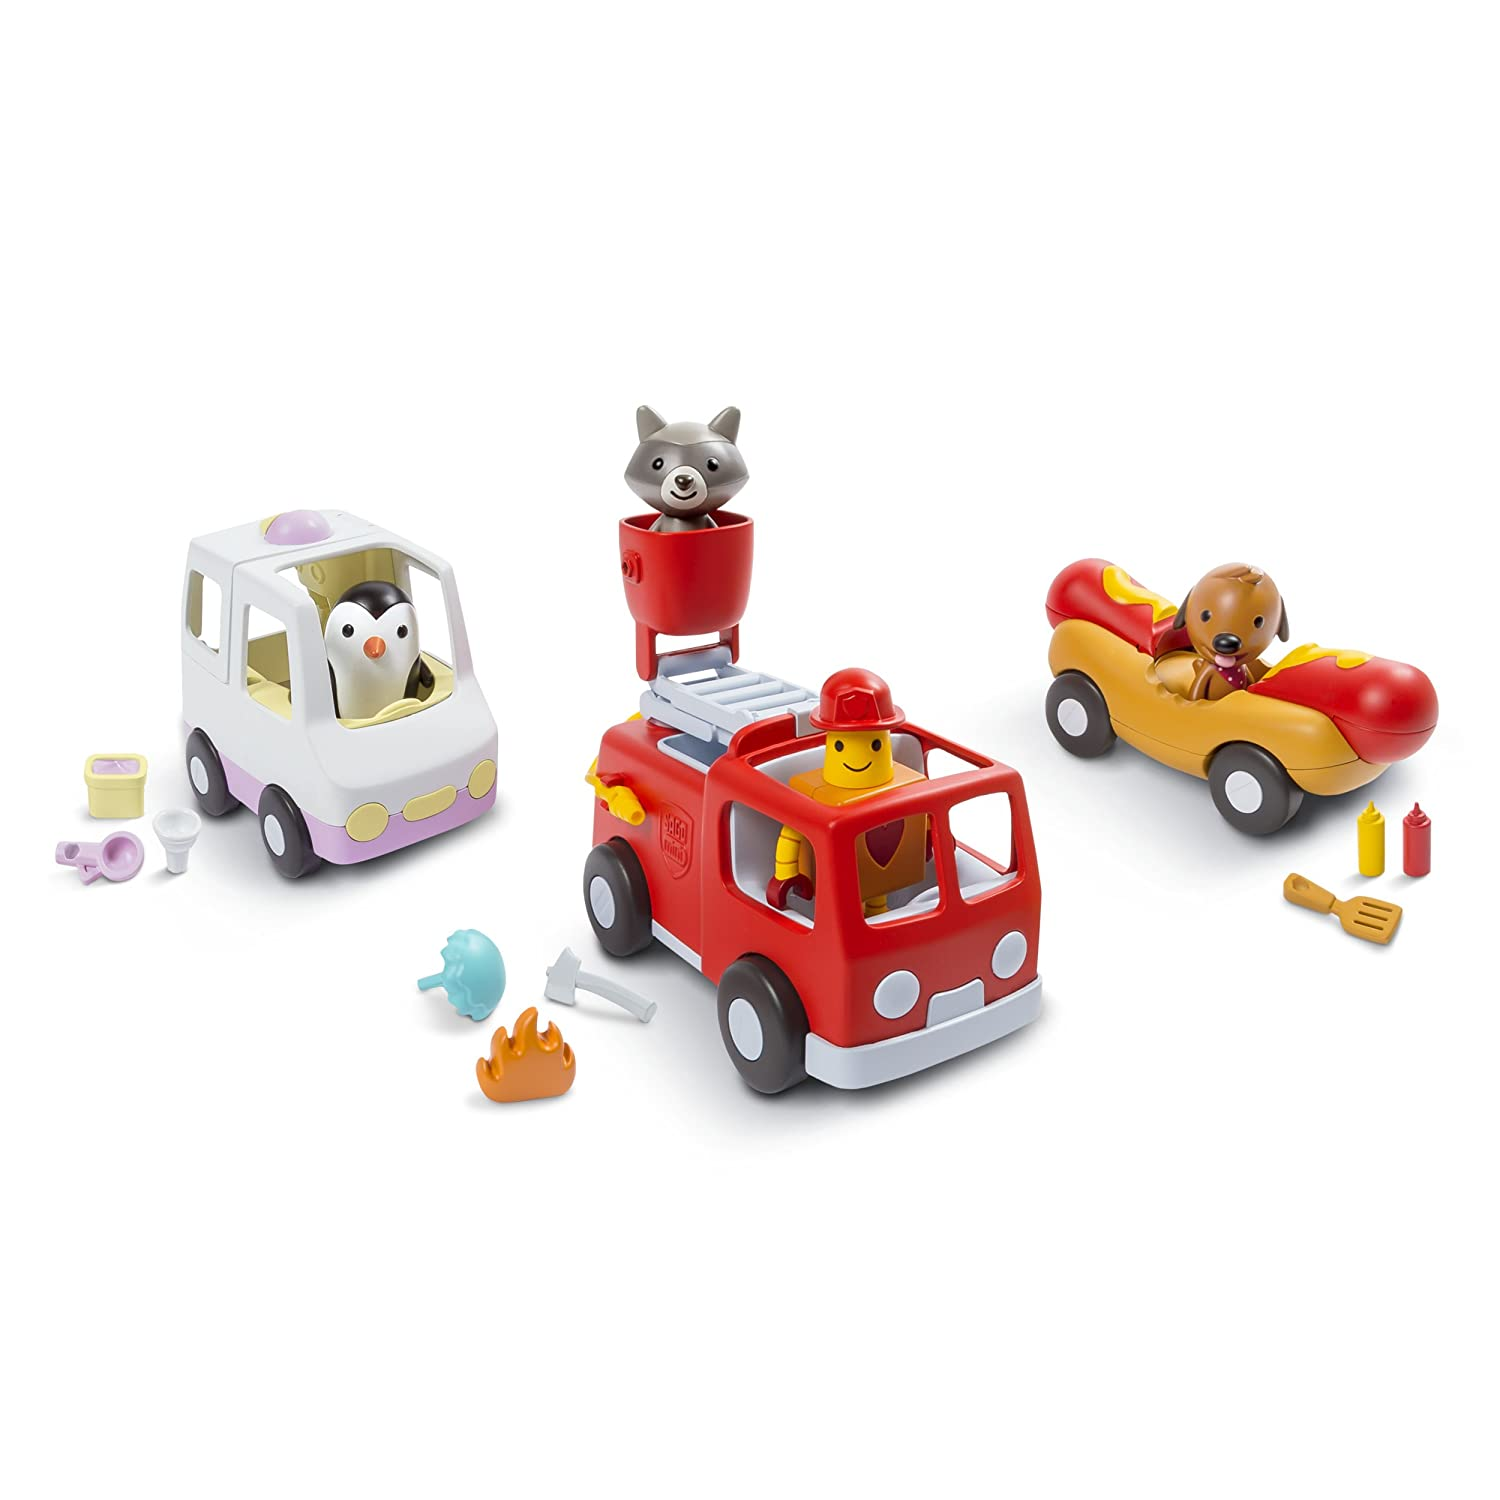 Sago Mini – Vehicles-Road Trip Collection, Multicolor 6038489